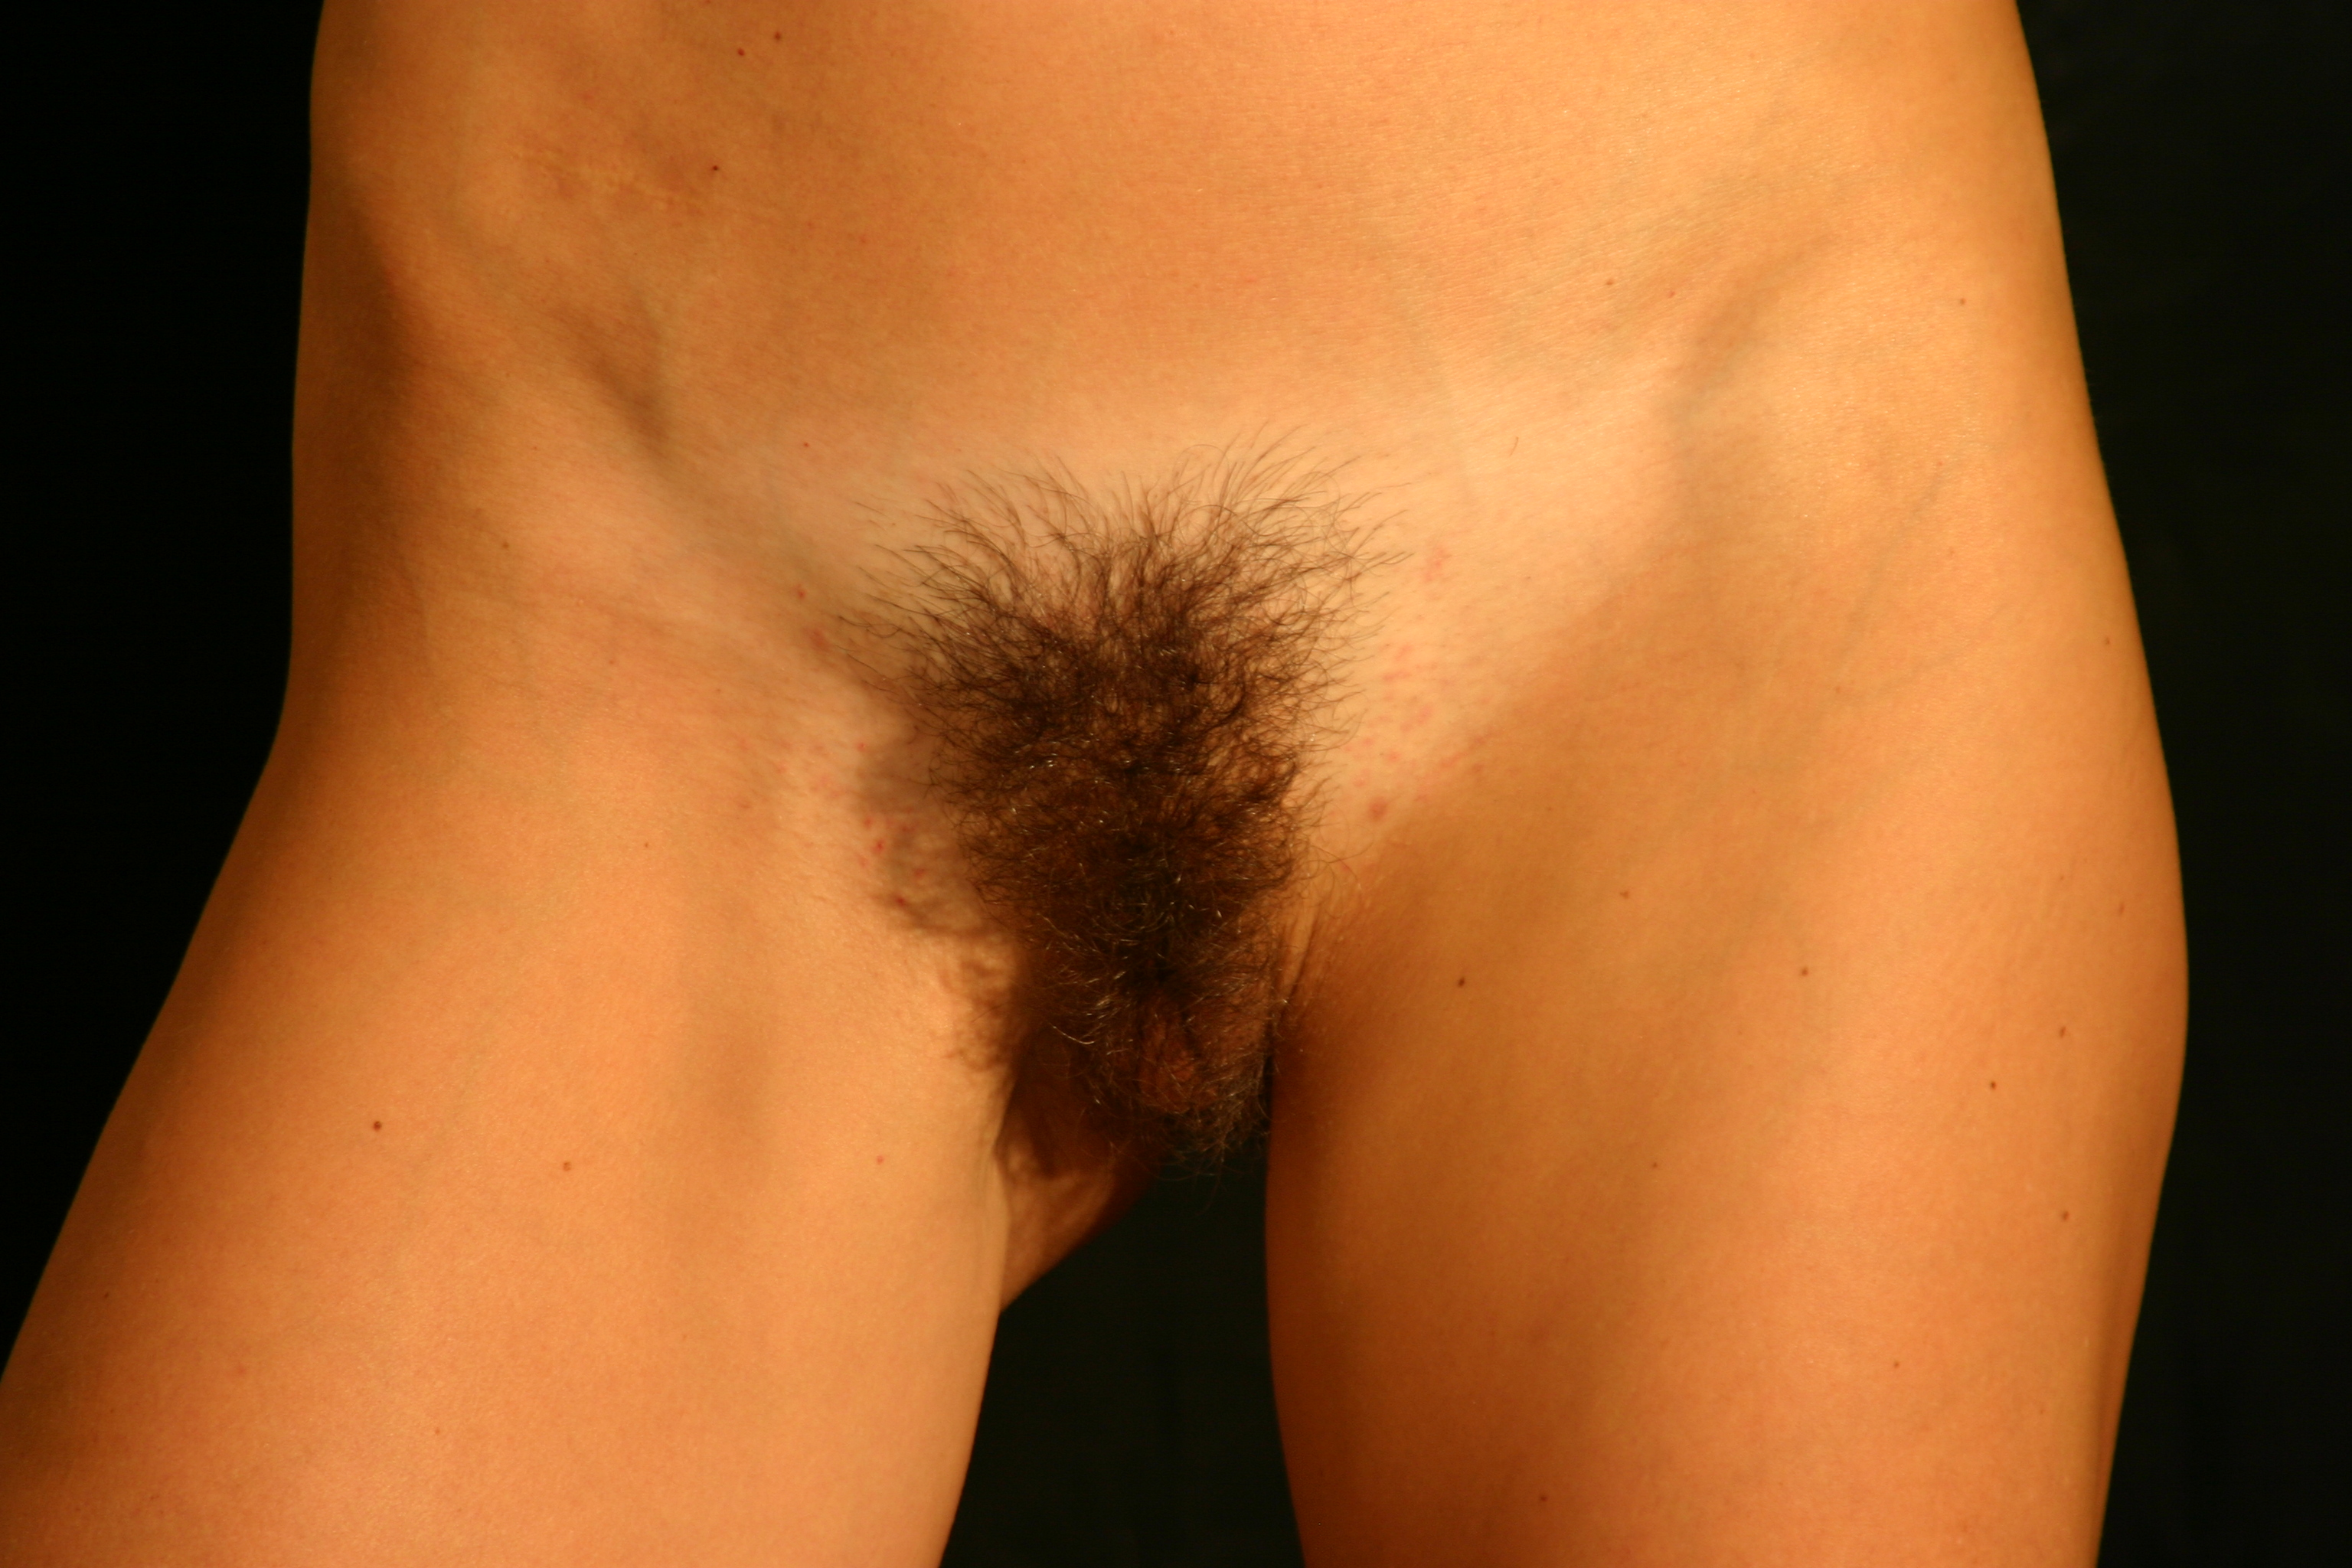 Sexy pubic hair styles photos, can t feel my orgasm